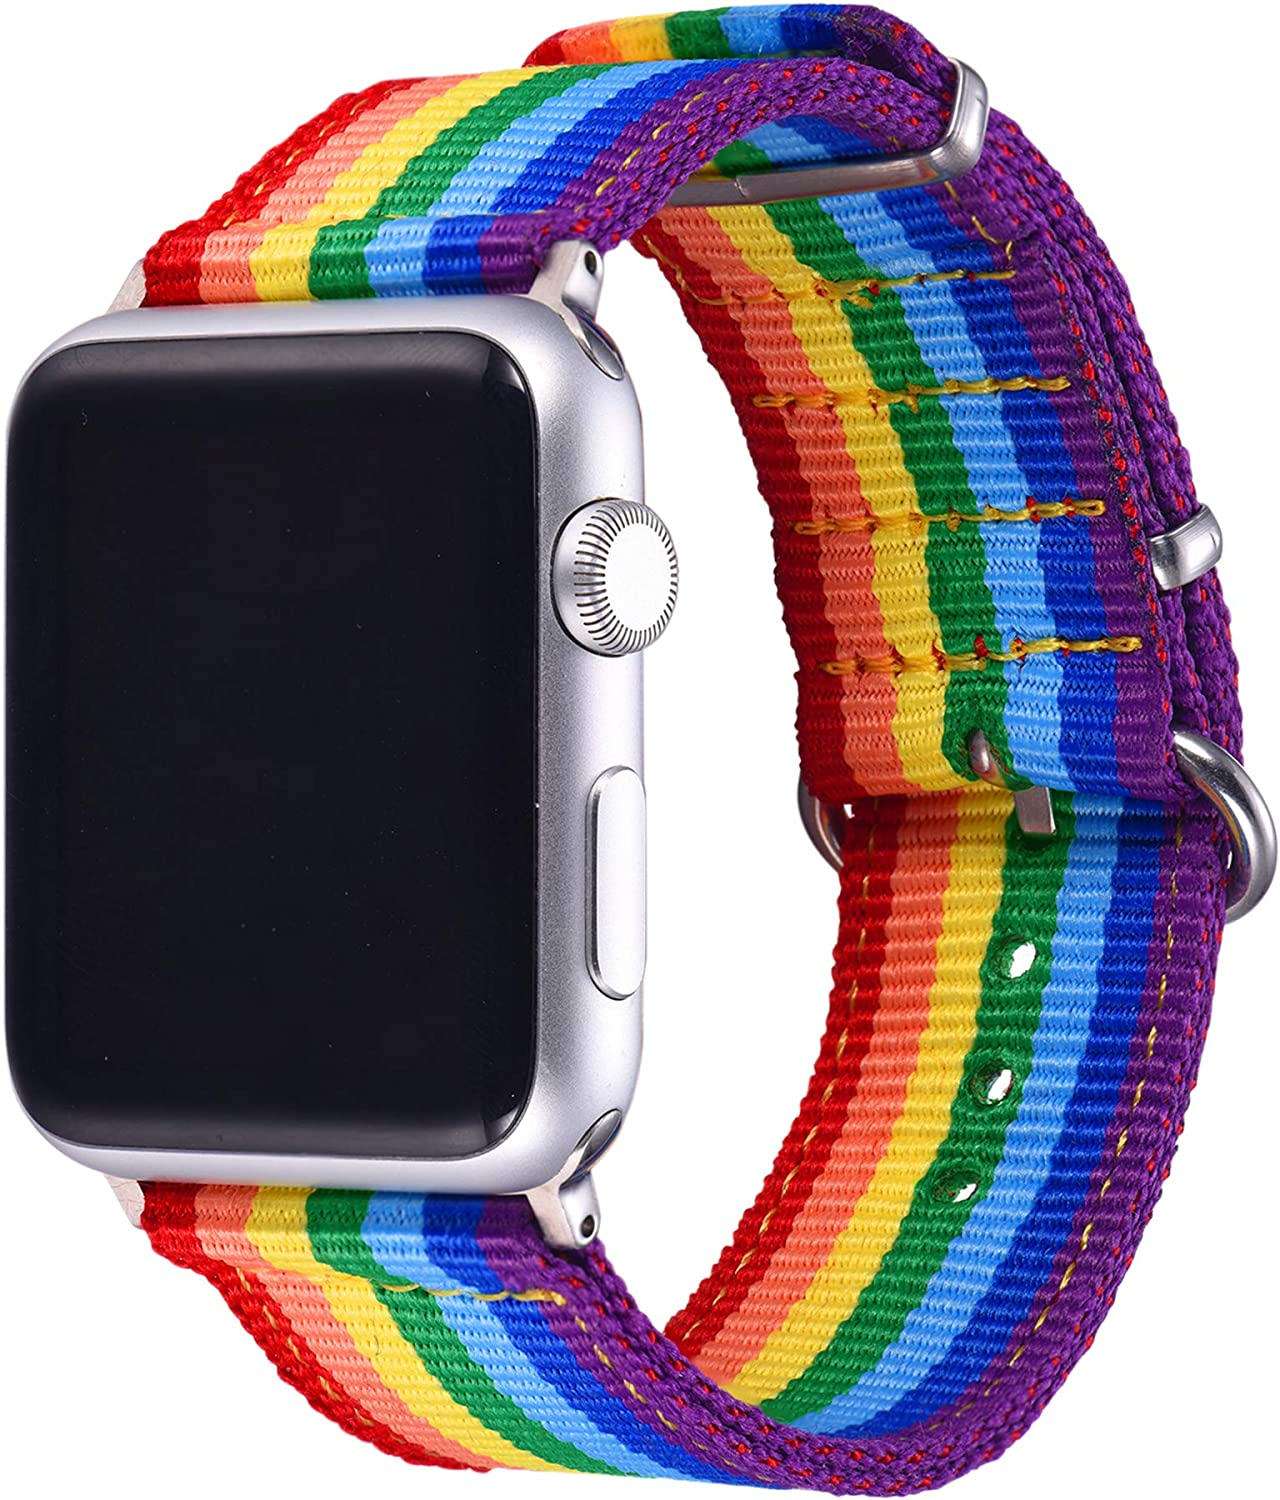 Bandmax Compatible For Apple Watch Rainbow Band 38MM/40MM Nylon Denim Fabric LGBT Pride Parade Sport Strap Replacement Wristband Accessory update apapter clasp Compatible For Iwatch Series 5/4/3/2/1